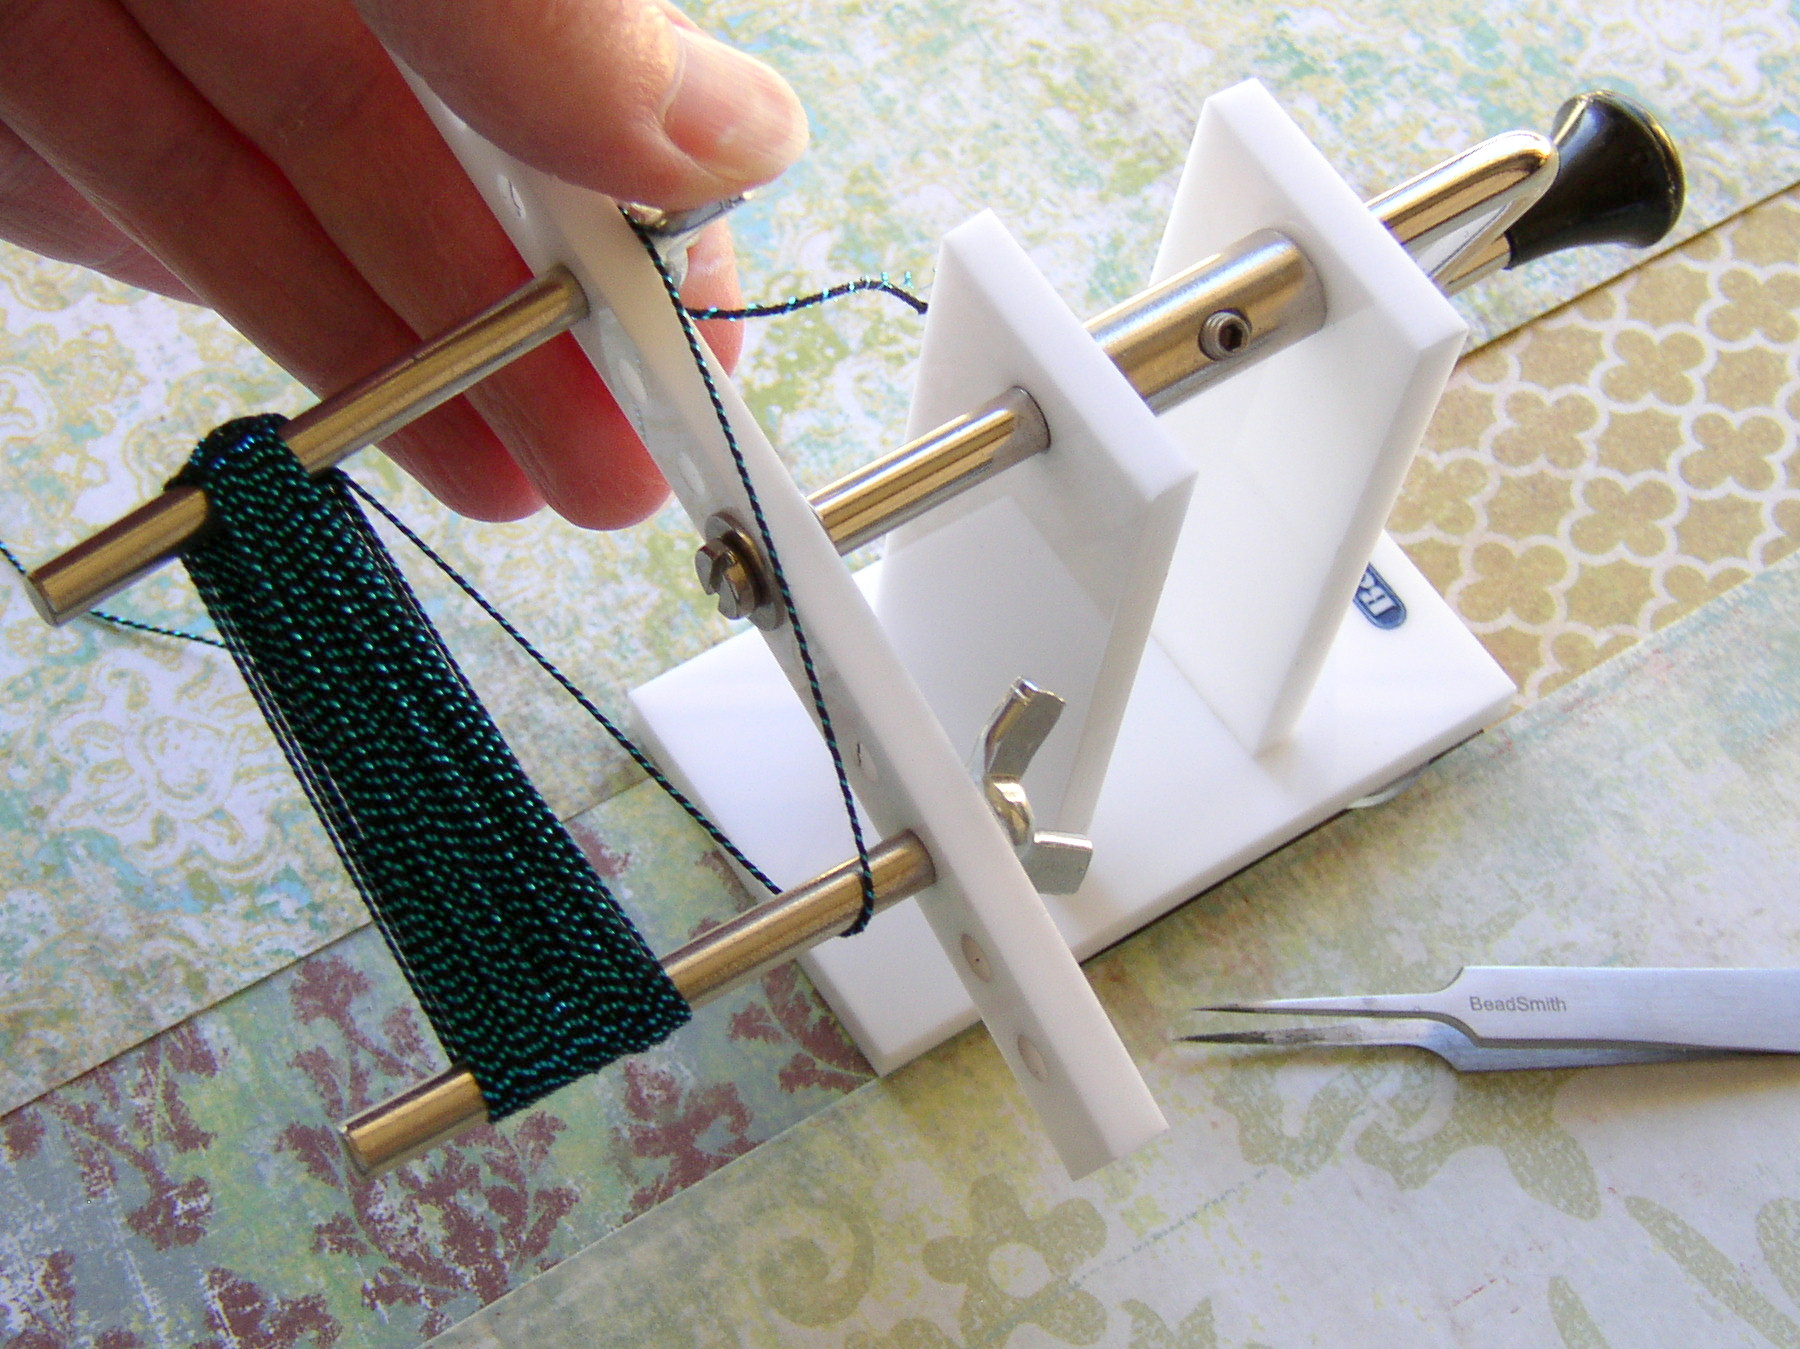 DIY tassel making tutorial with Beadalon Tassel Maker Tool.